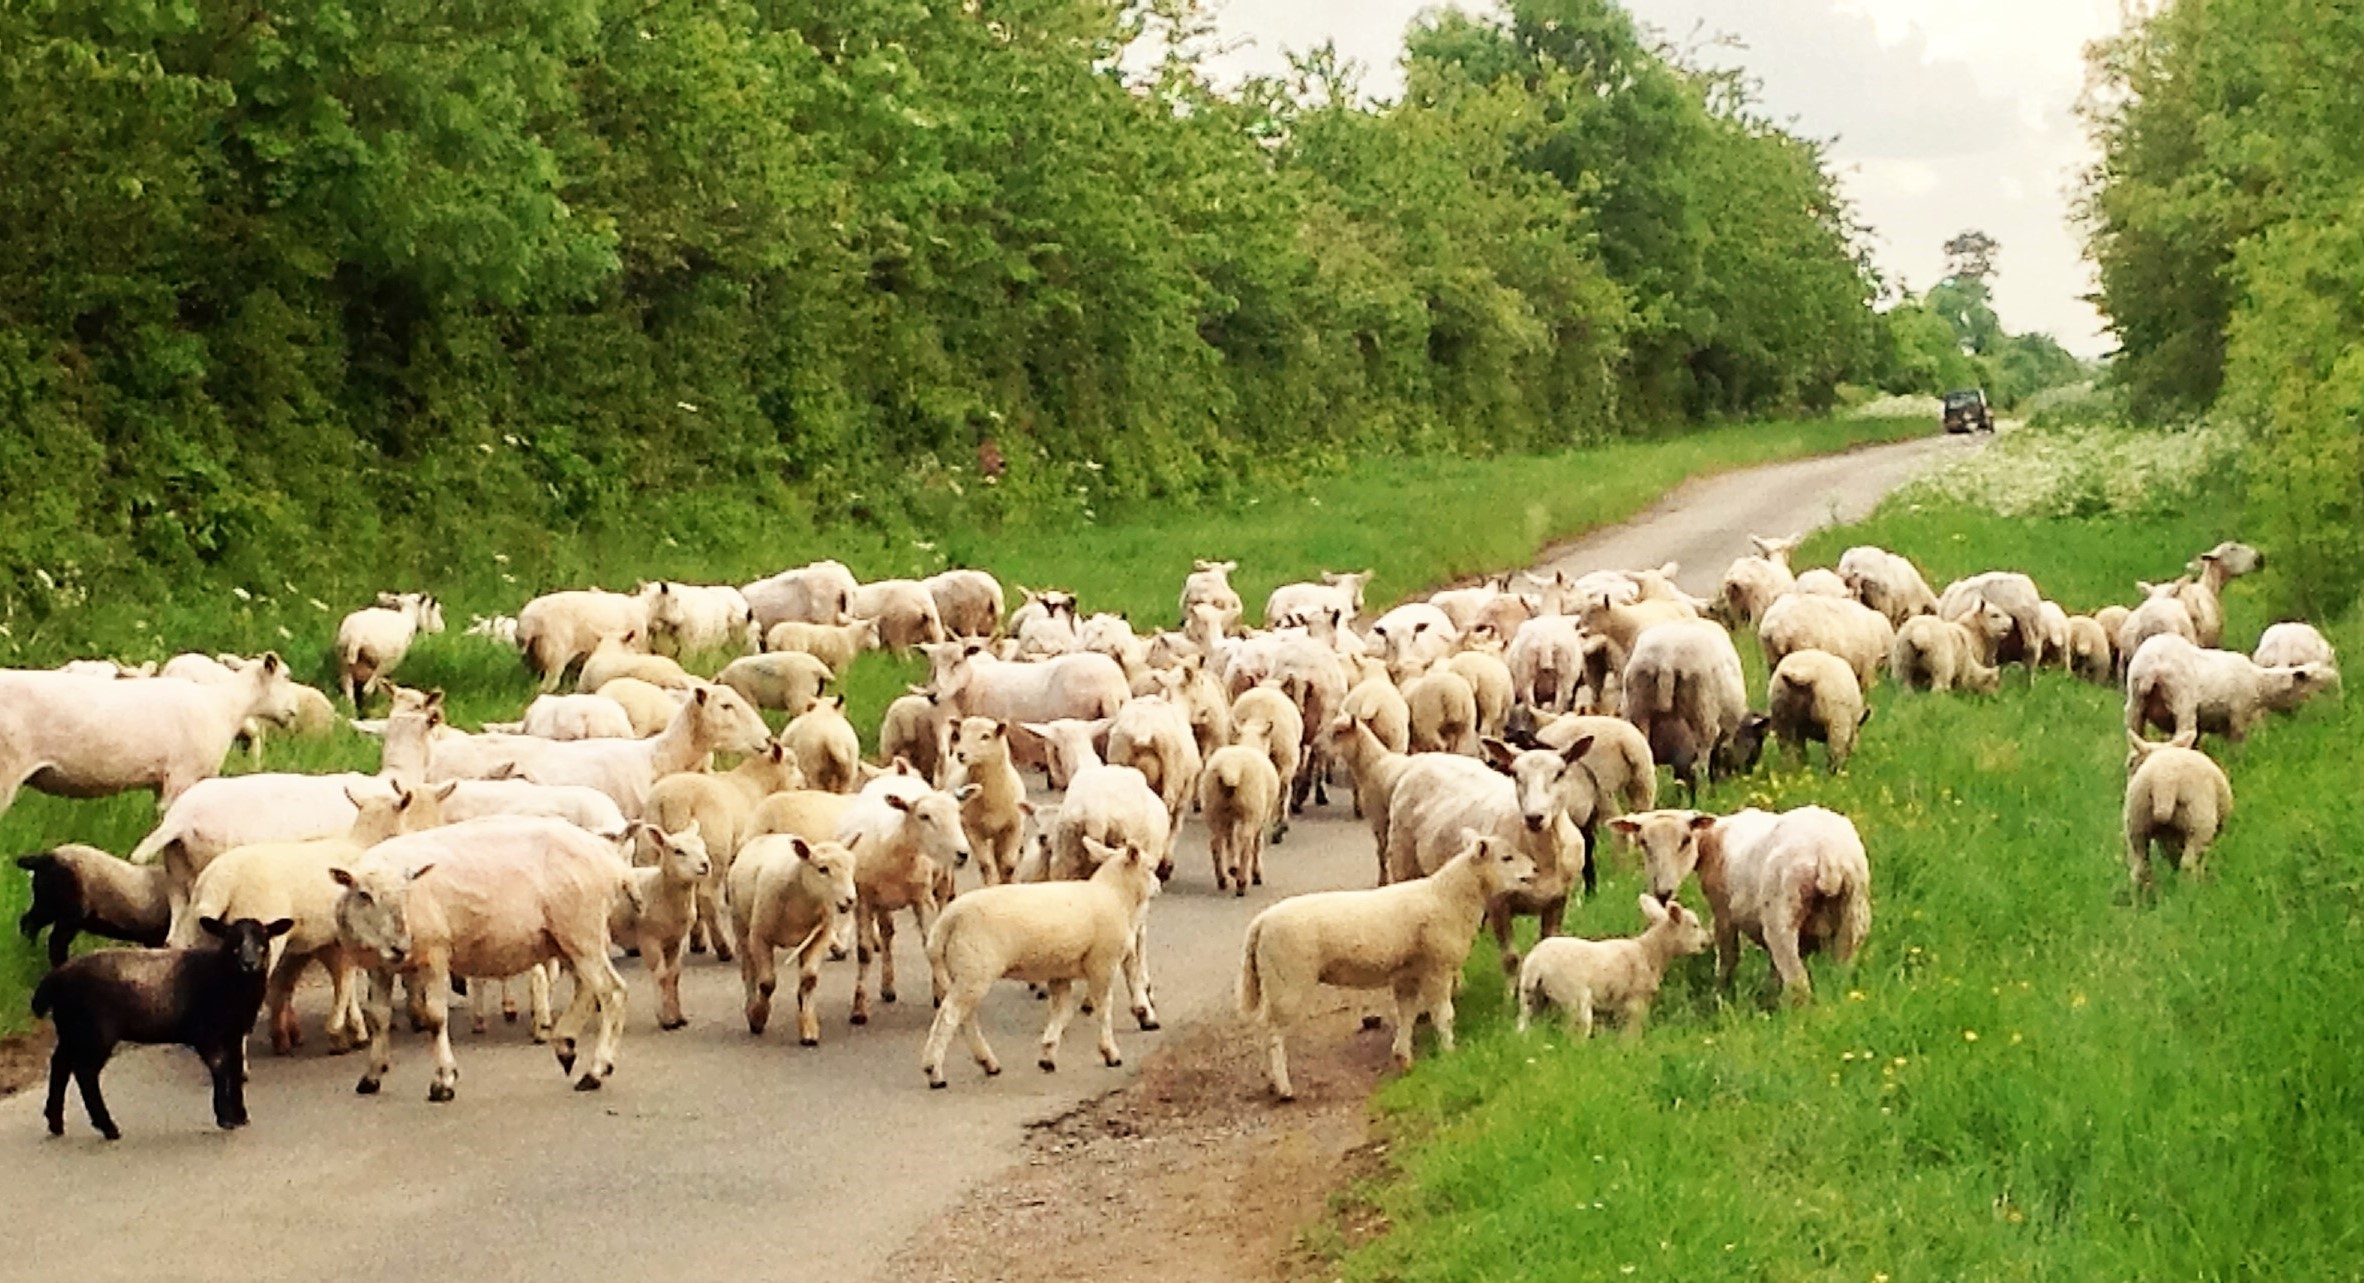 Moving the sheep from field to field